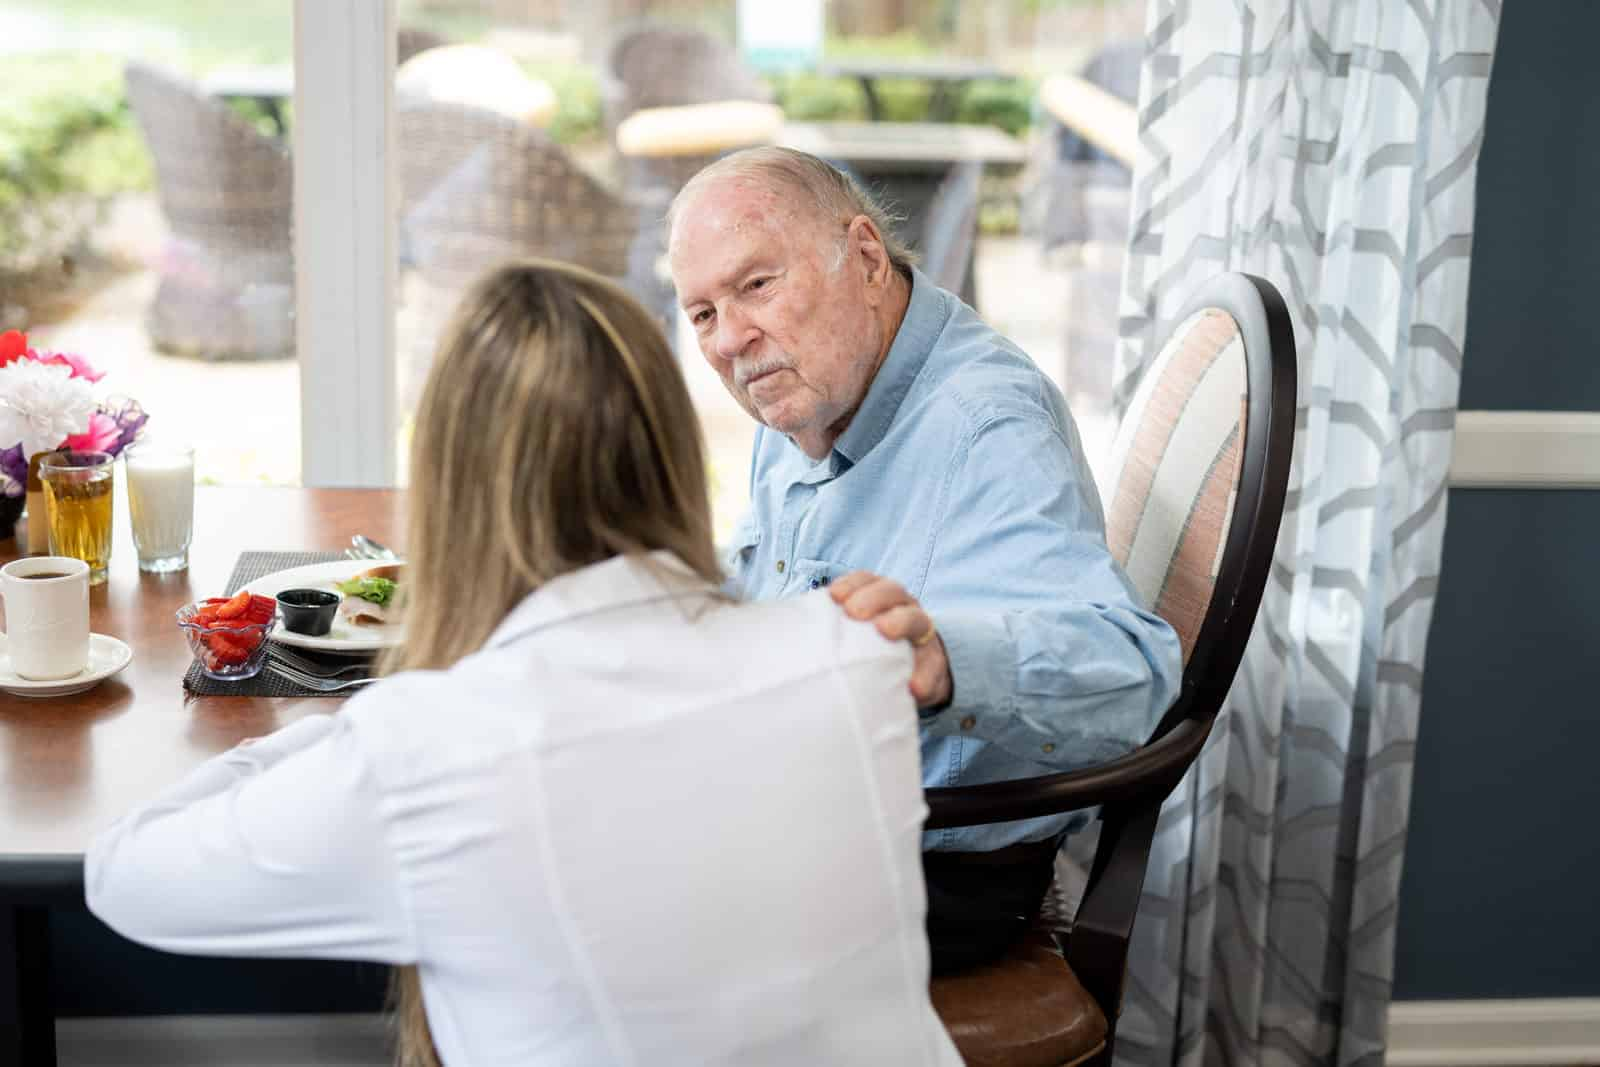 Anxiety In The Elderly: Symptoms And Restorative Strategies